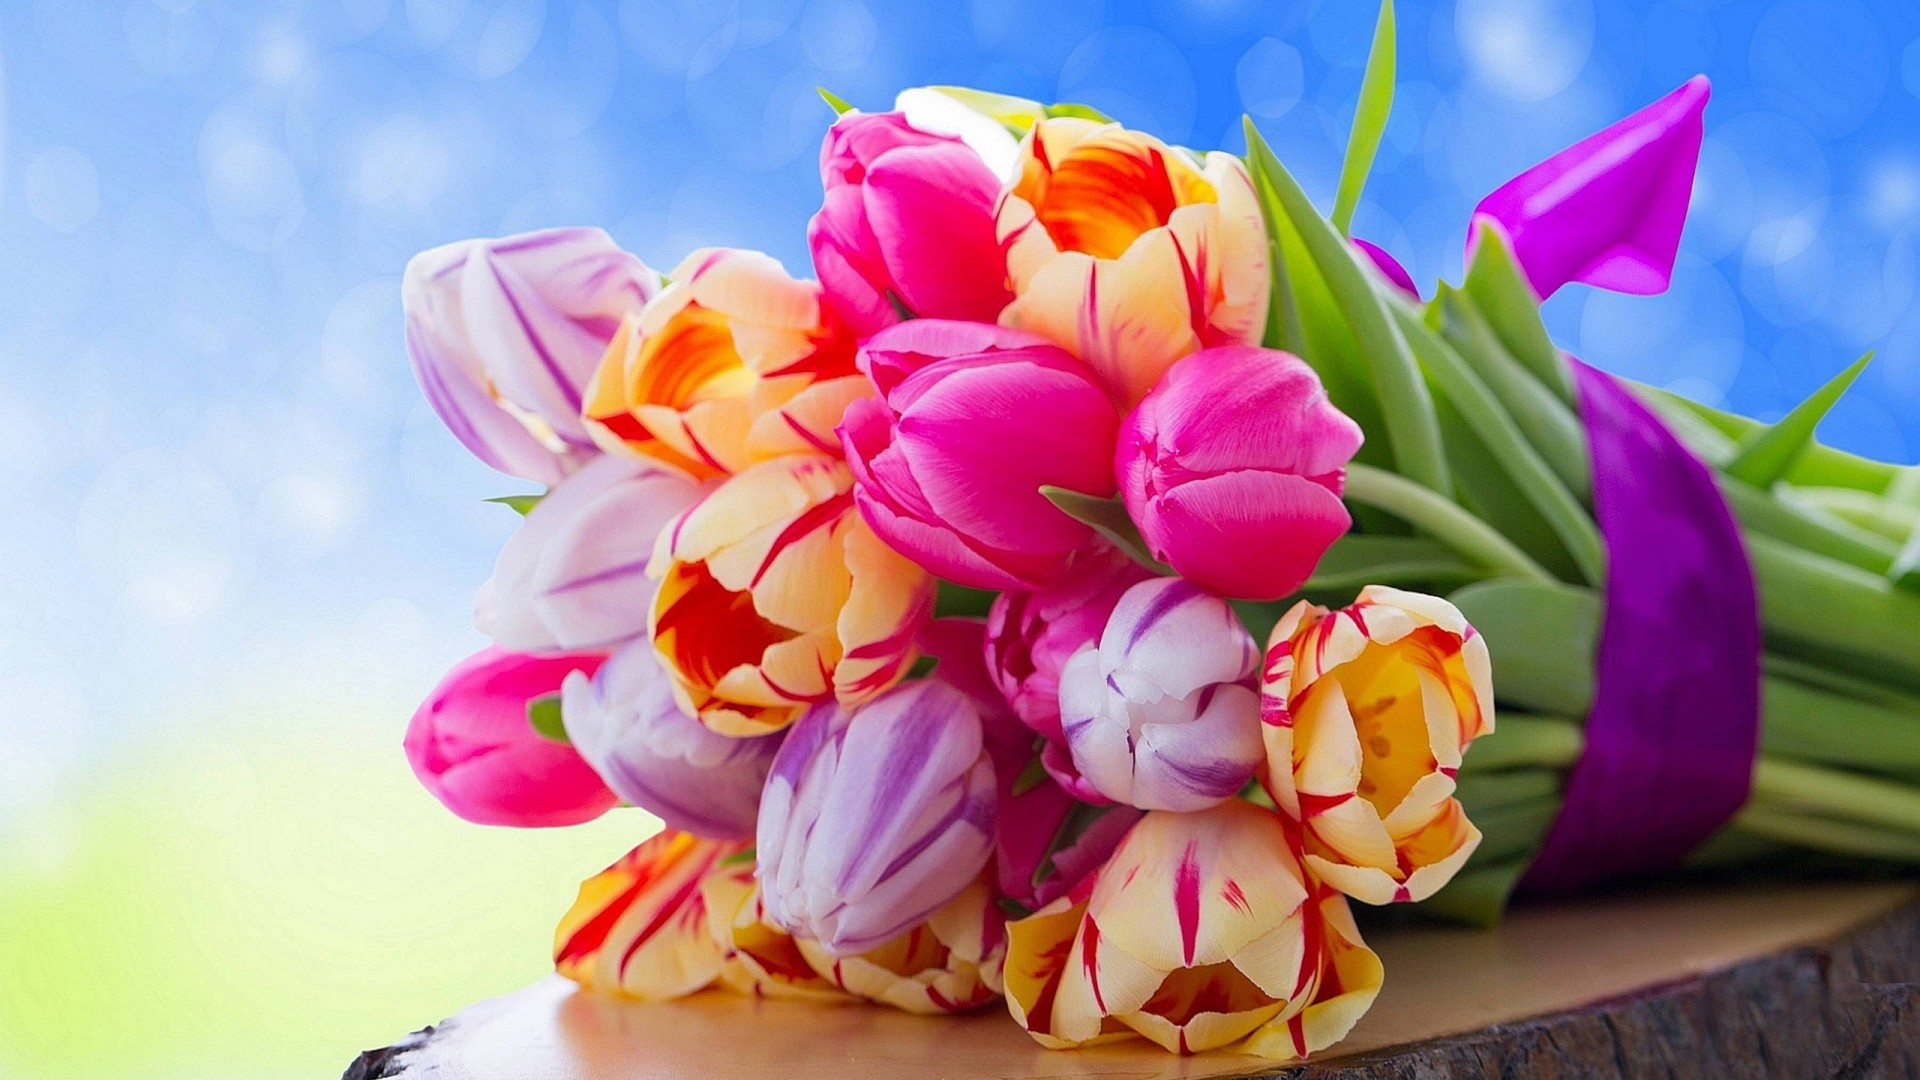 ** Florist by Waitrose & Partners Voucher Code – 10% off Flowers at Florist by Waitrose & Partners